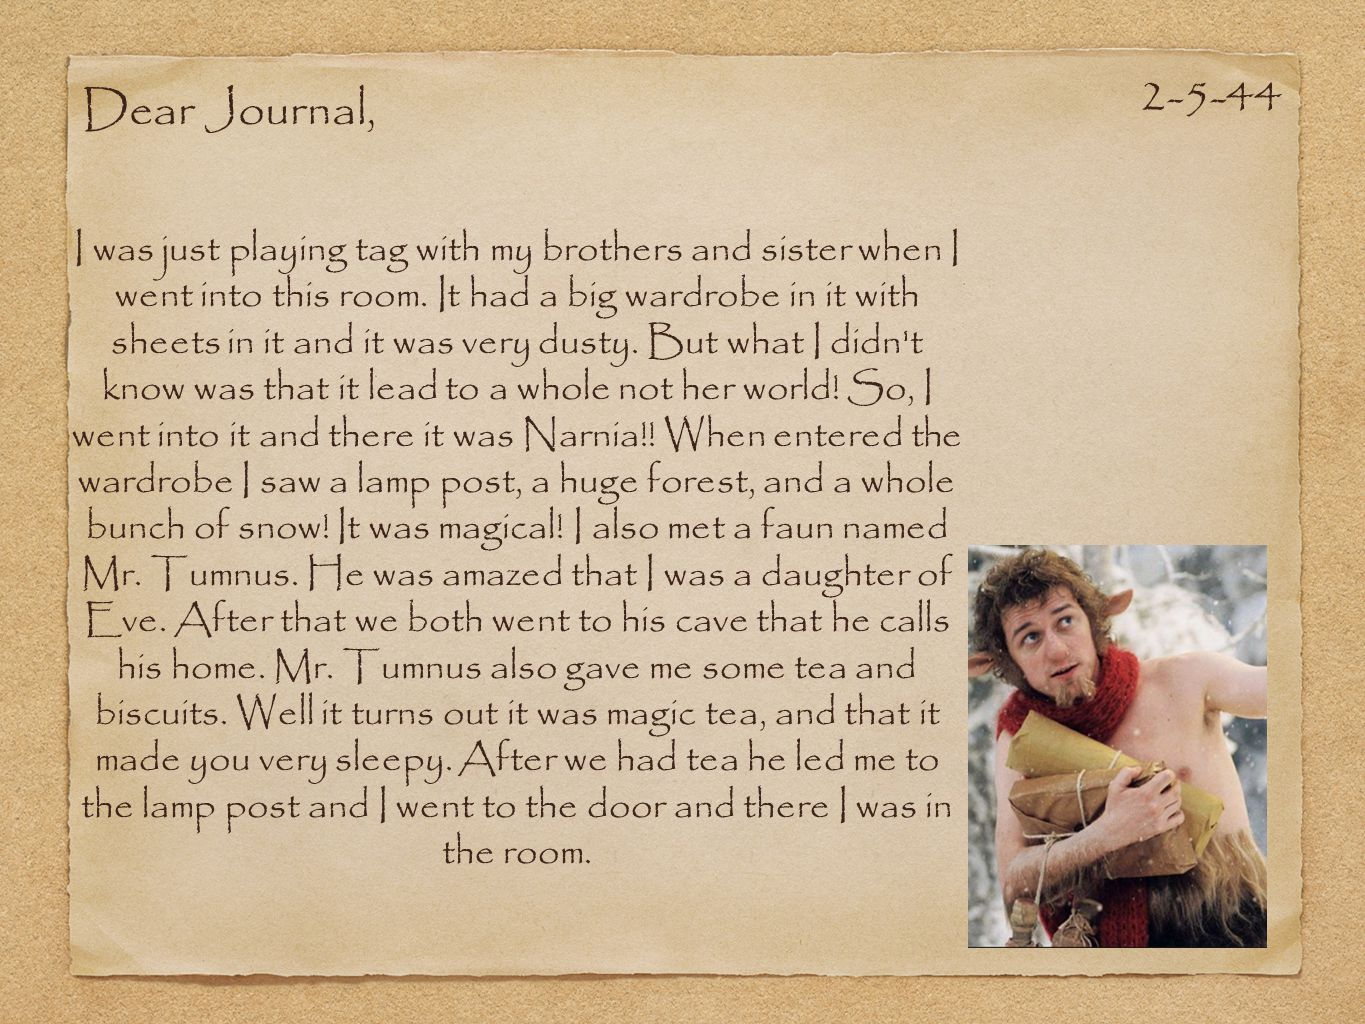 2-5-44 Dear Journal,